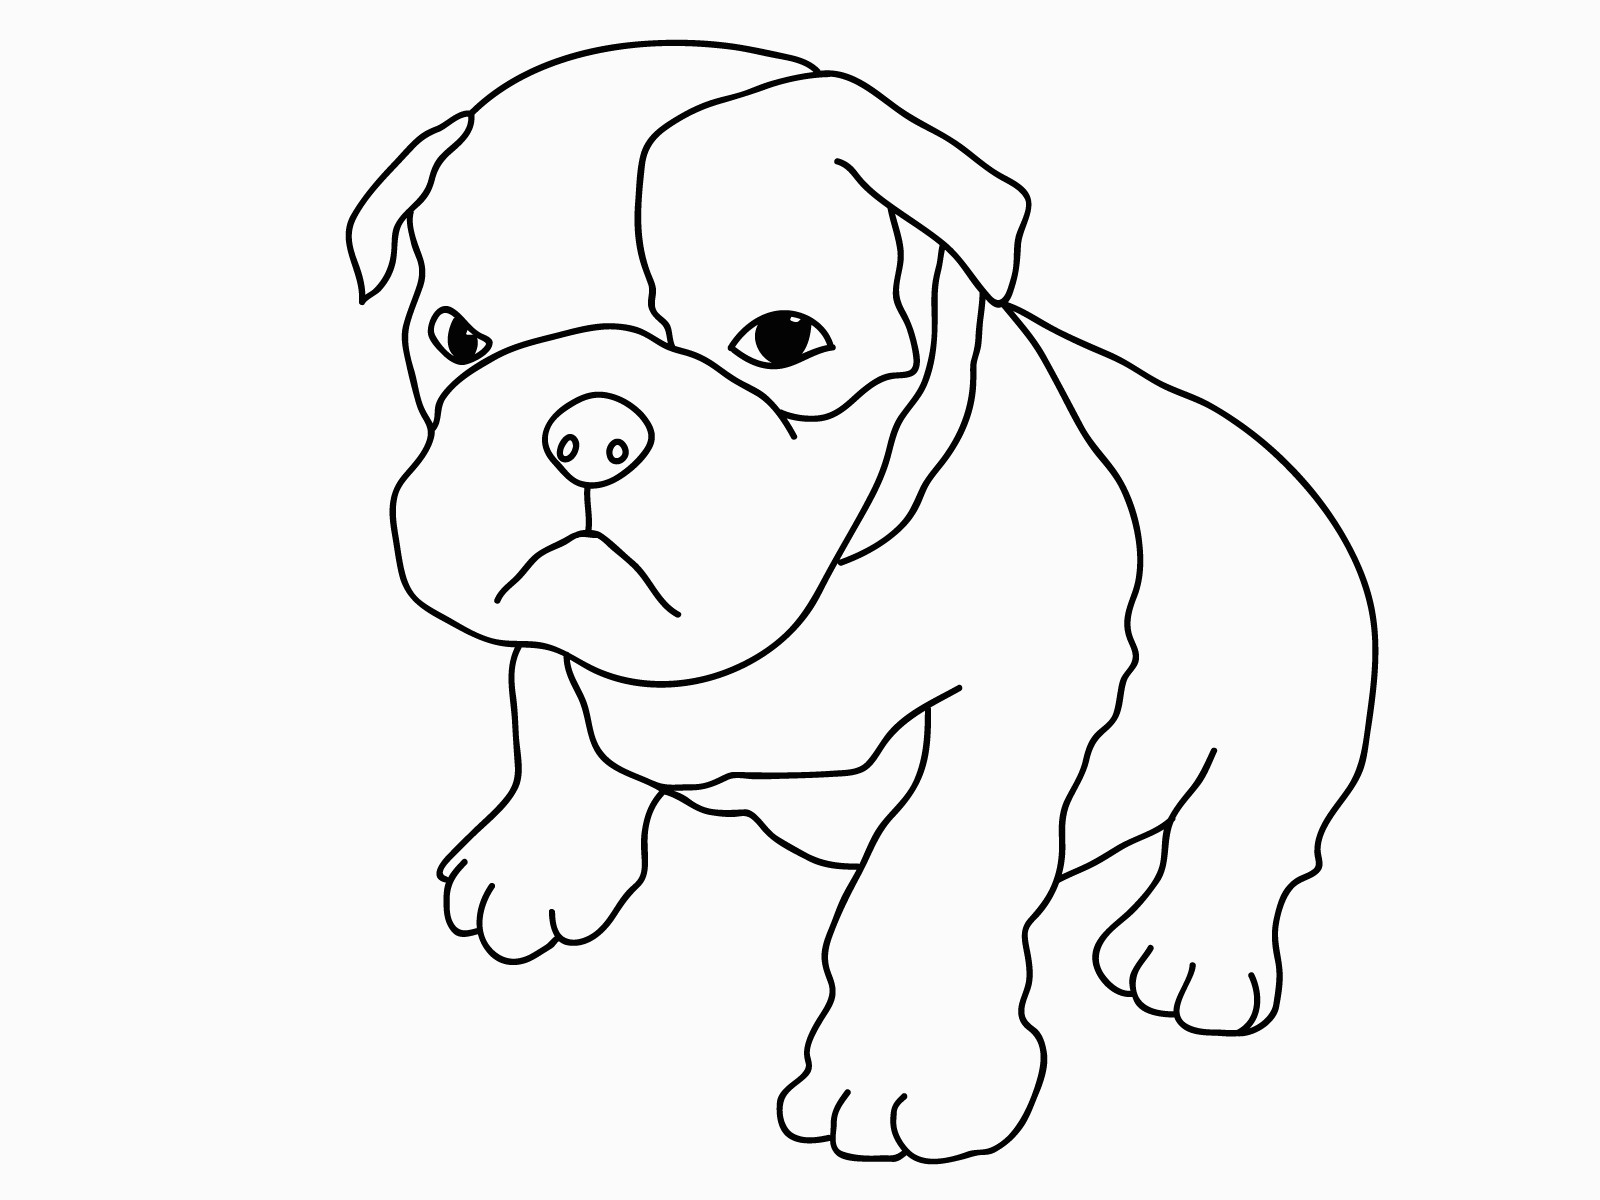 Picture Of A Dog To Color   Printable Coloring Pages - Free Printable Dog Coloring Pages